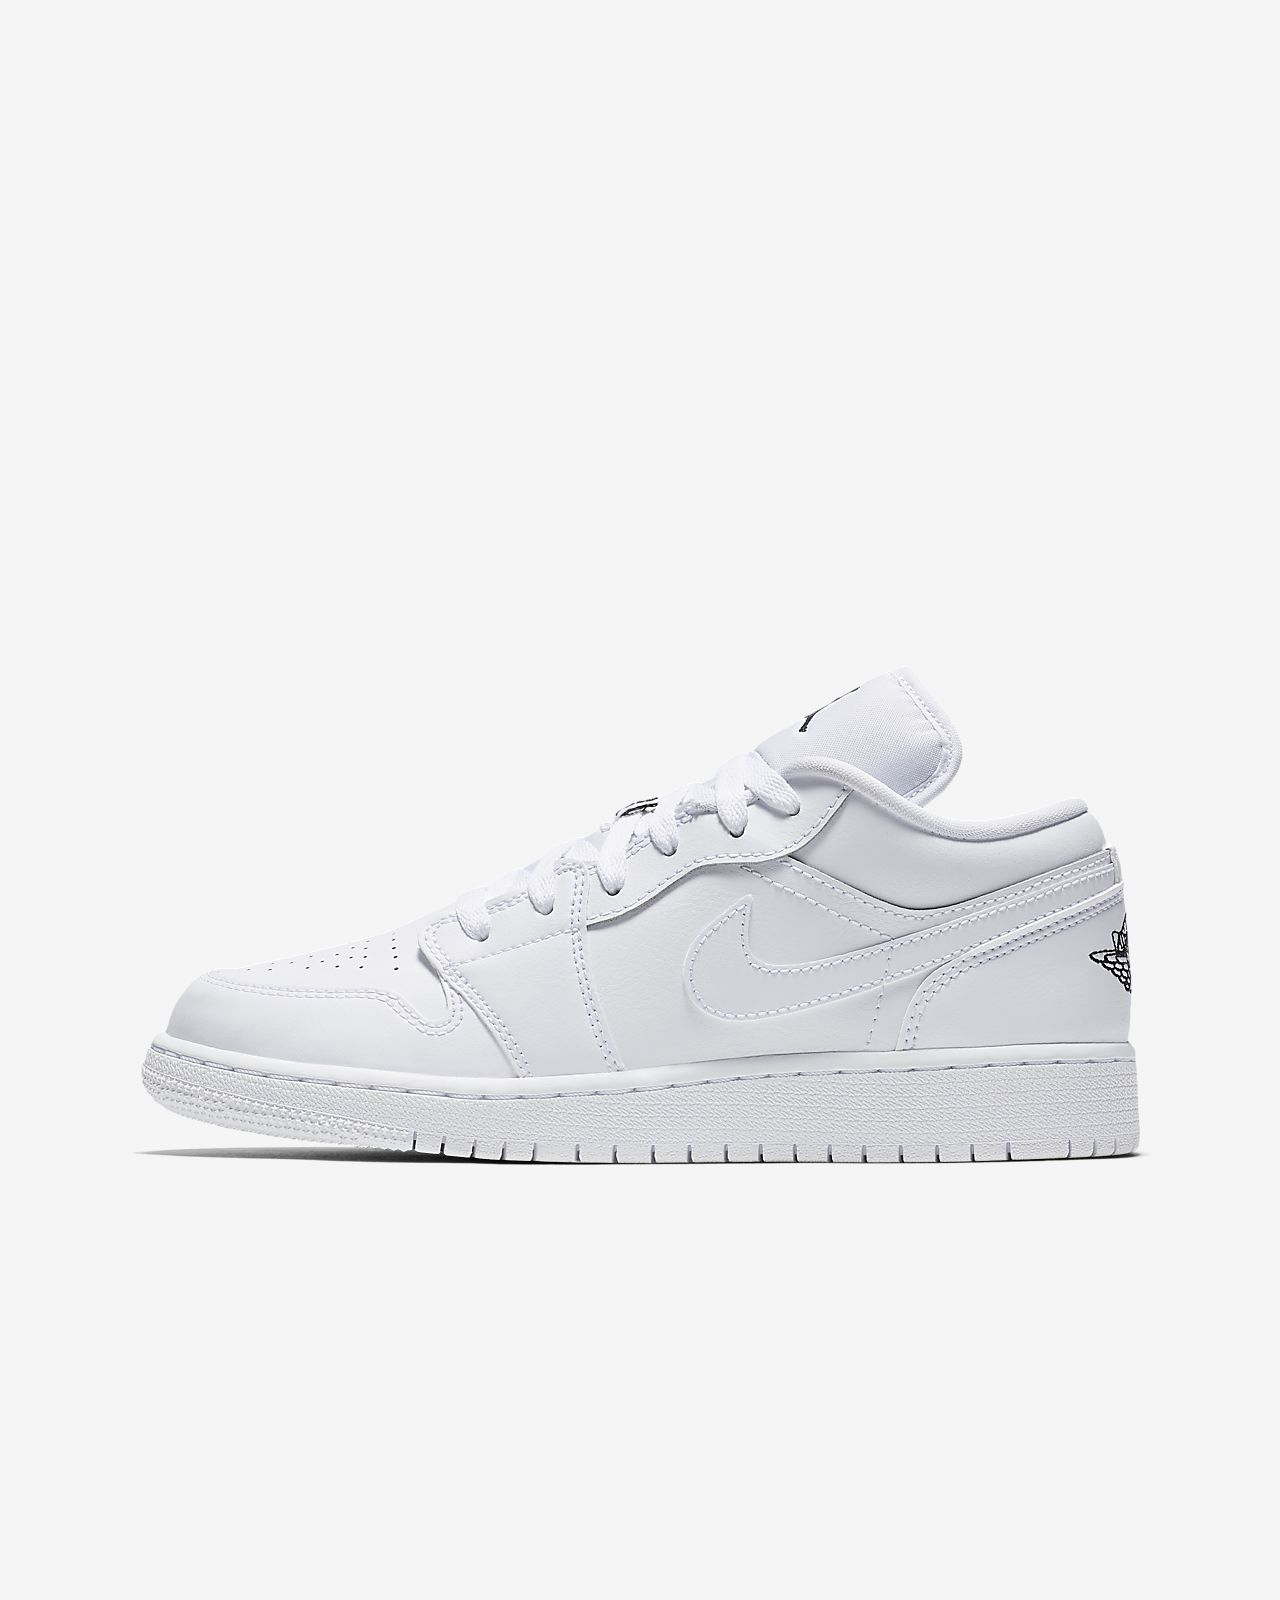 new concept 8459d 7cdcc Air Jordan 1 Low Older Kids' Shoe